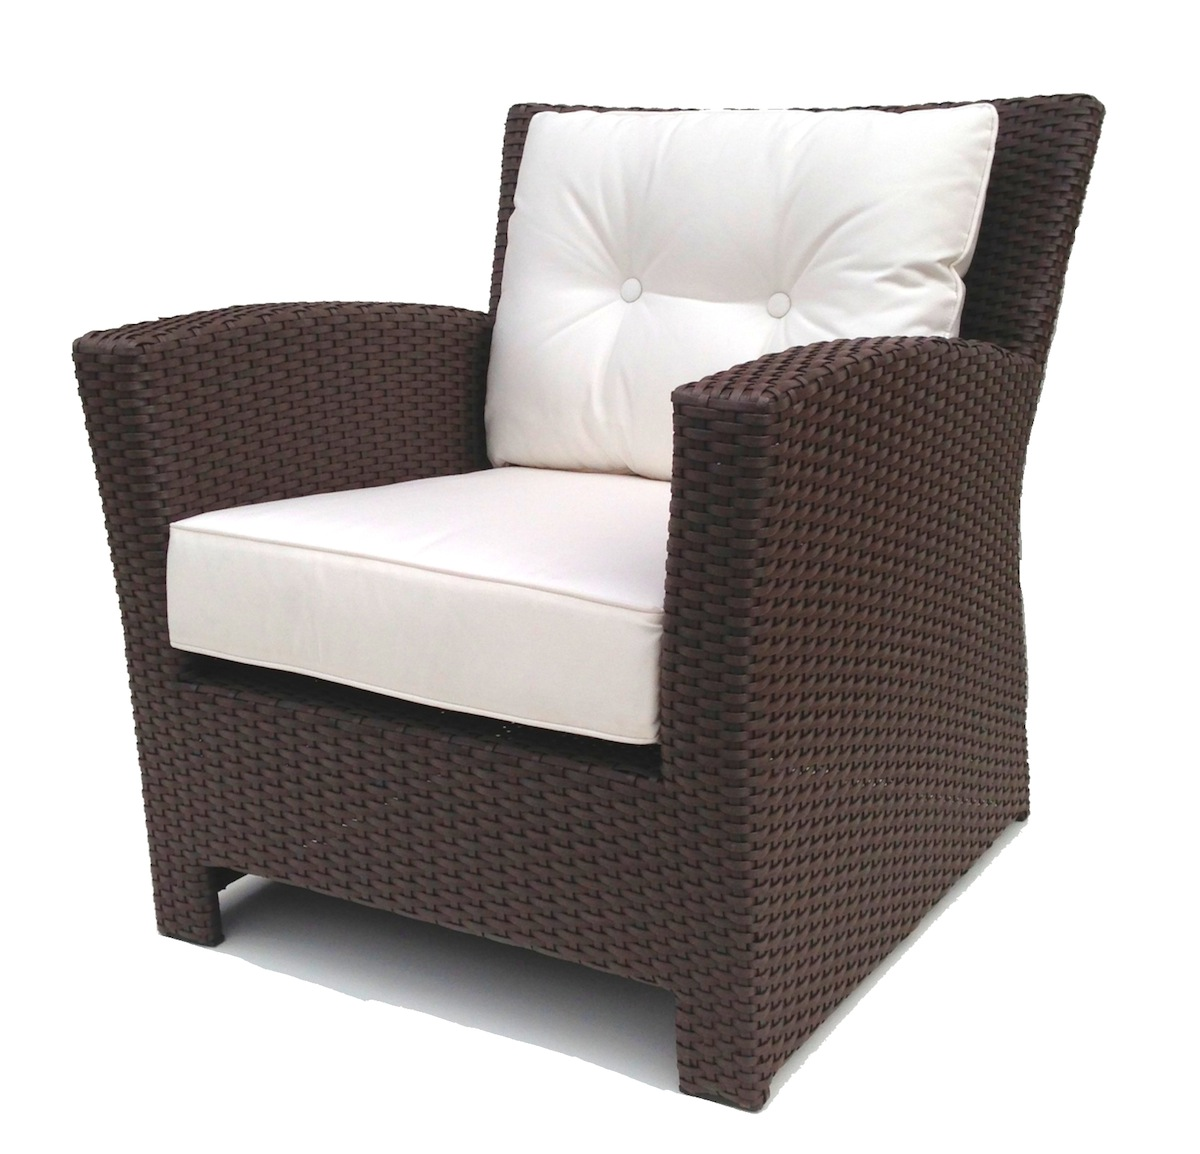 Outdoor wicker club chair for Rattan outdoor furniture